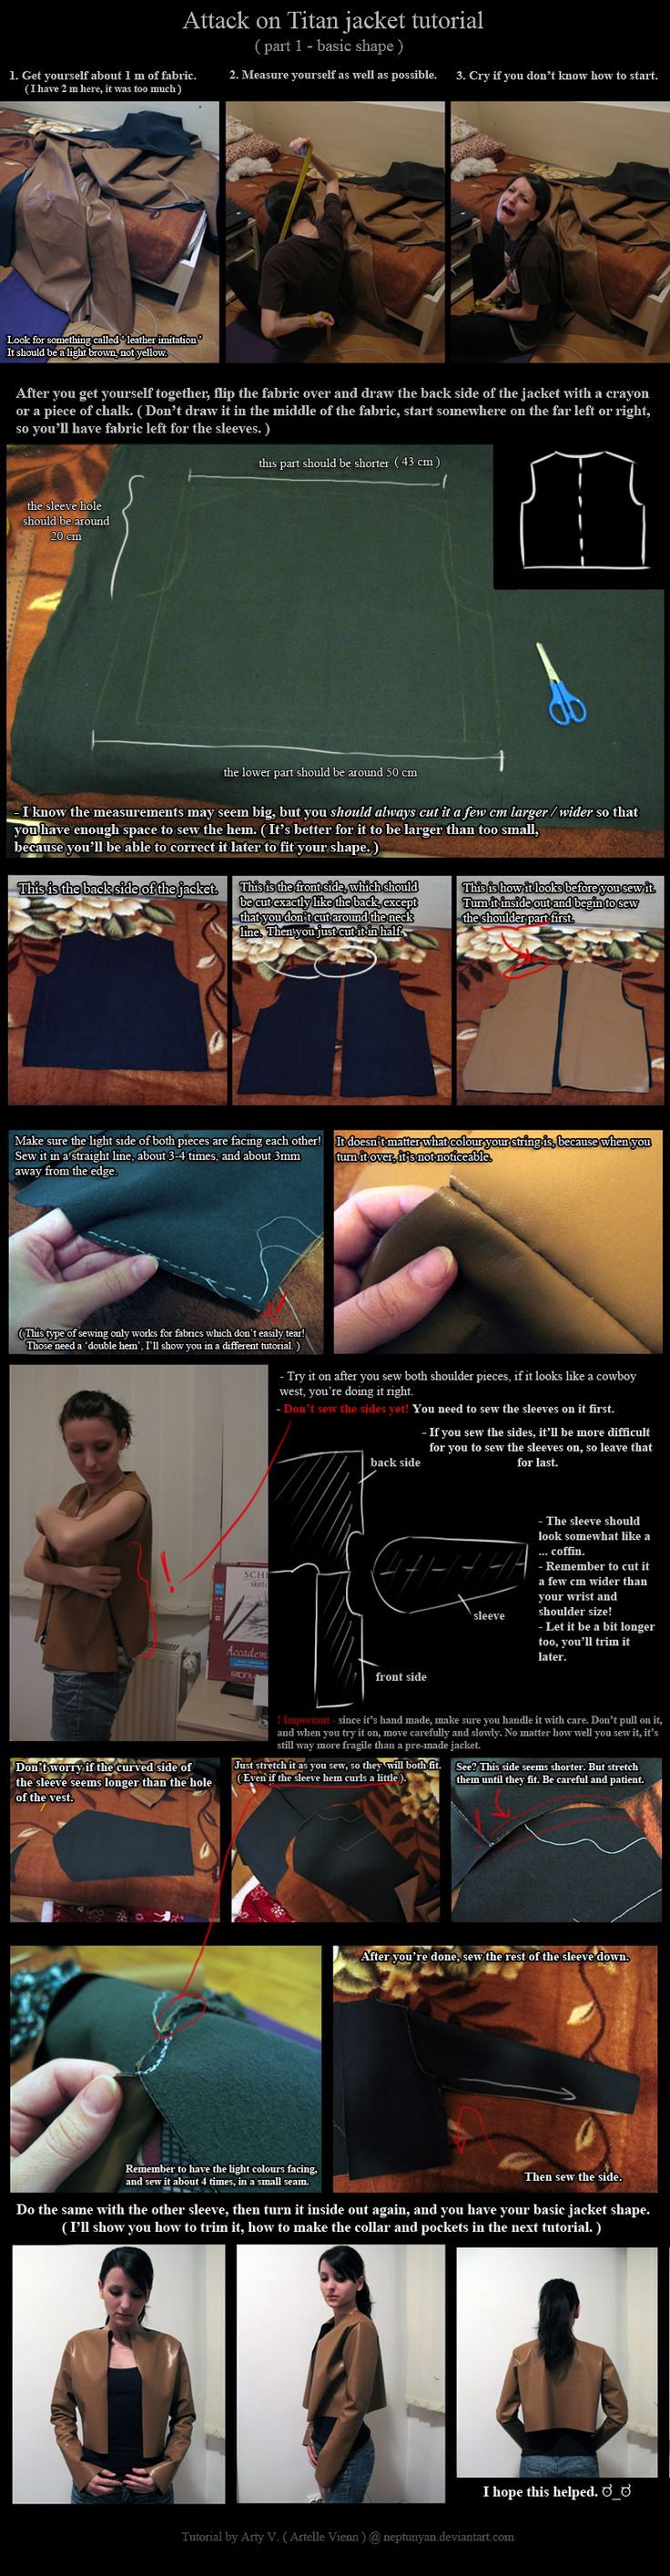 Attack on Titan Jacket Tutorial - basic shape. by neptunyan.deviantart.com on @DeviantArt